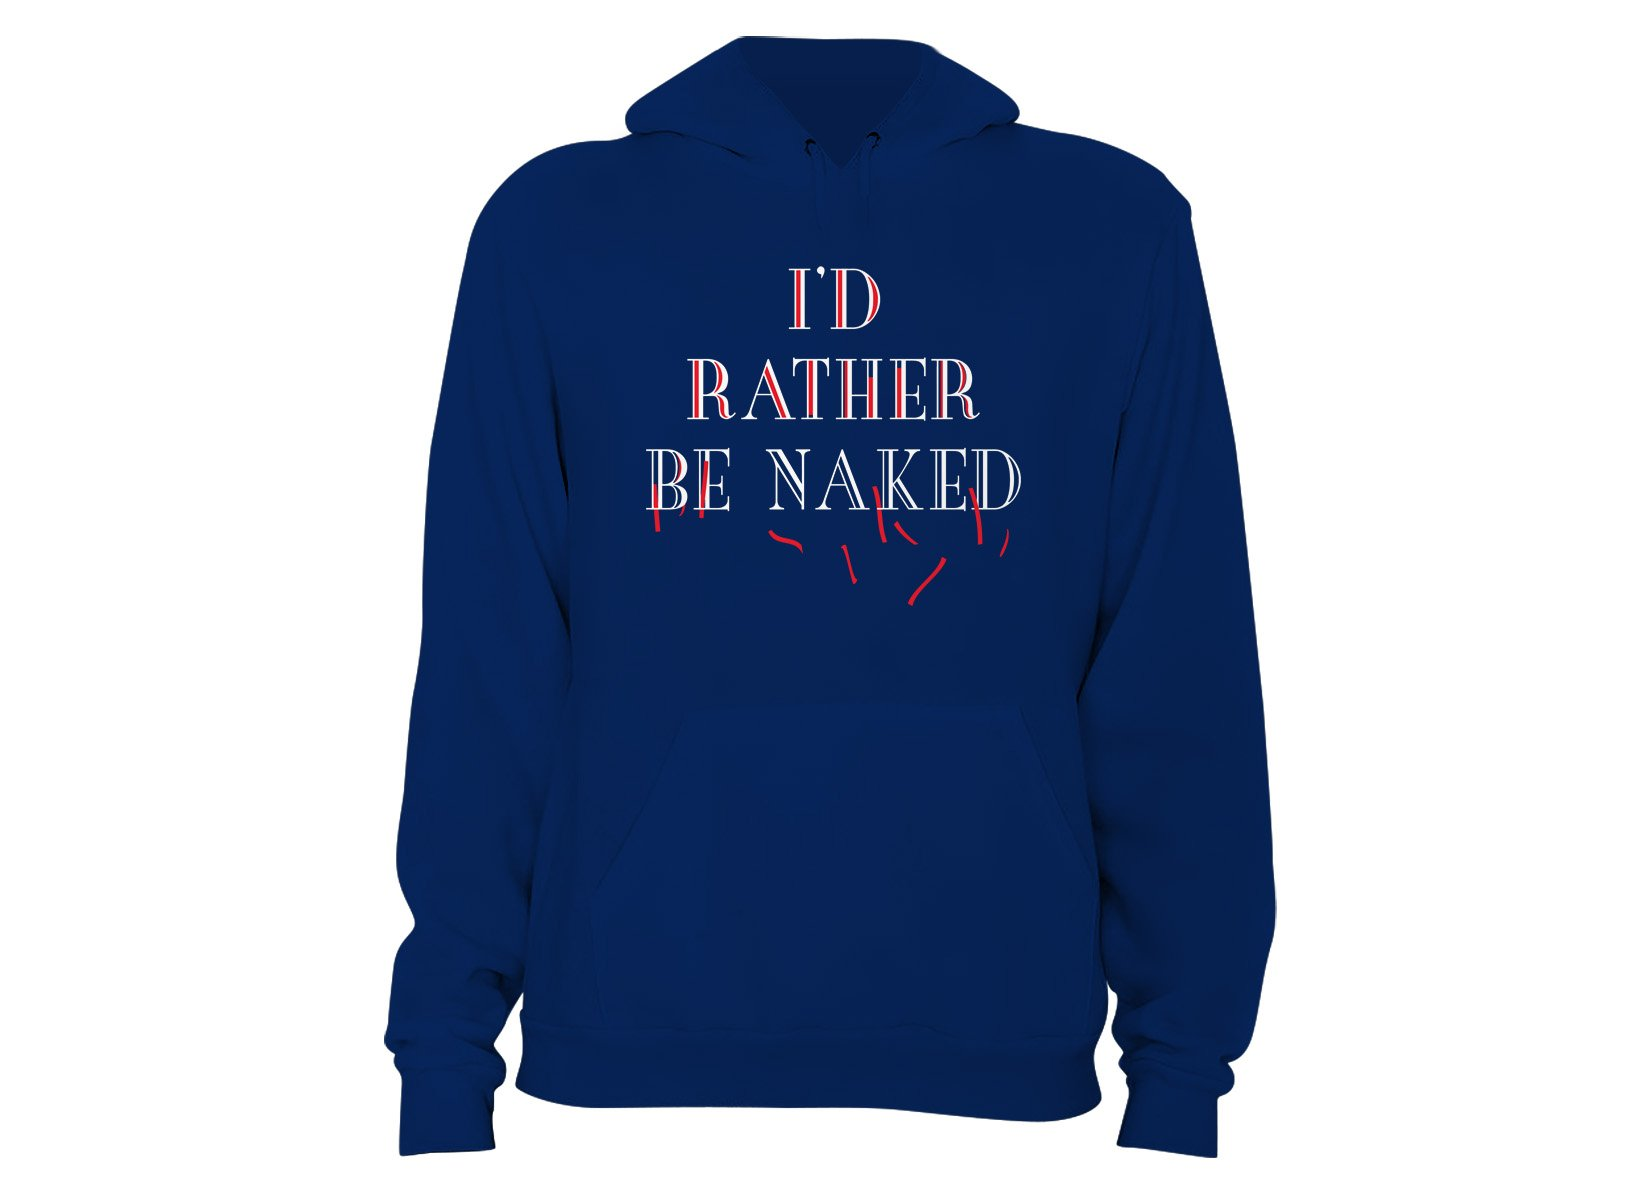 I'd Rather Be Naked on Hoodie